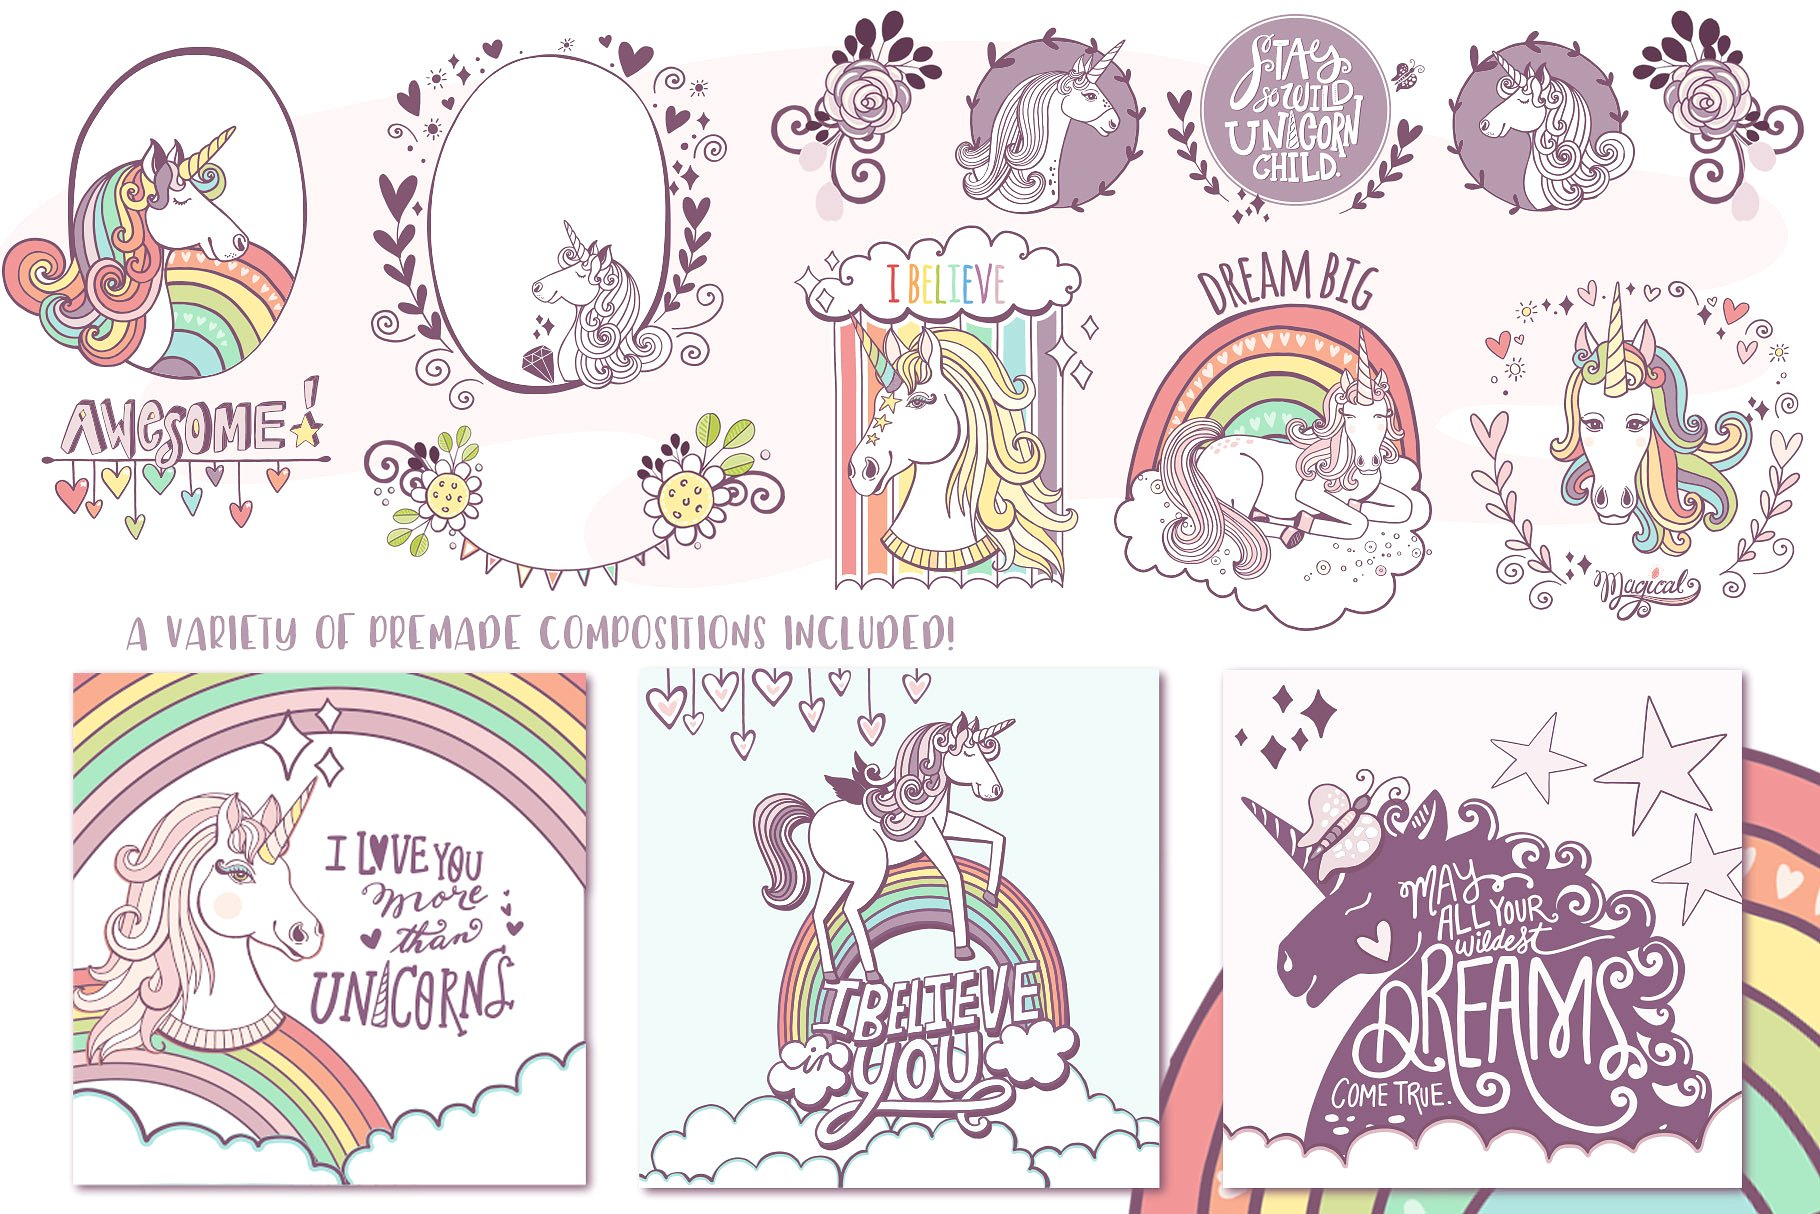 cm-unicorn-rainbows-04-preview-.jpg